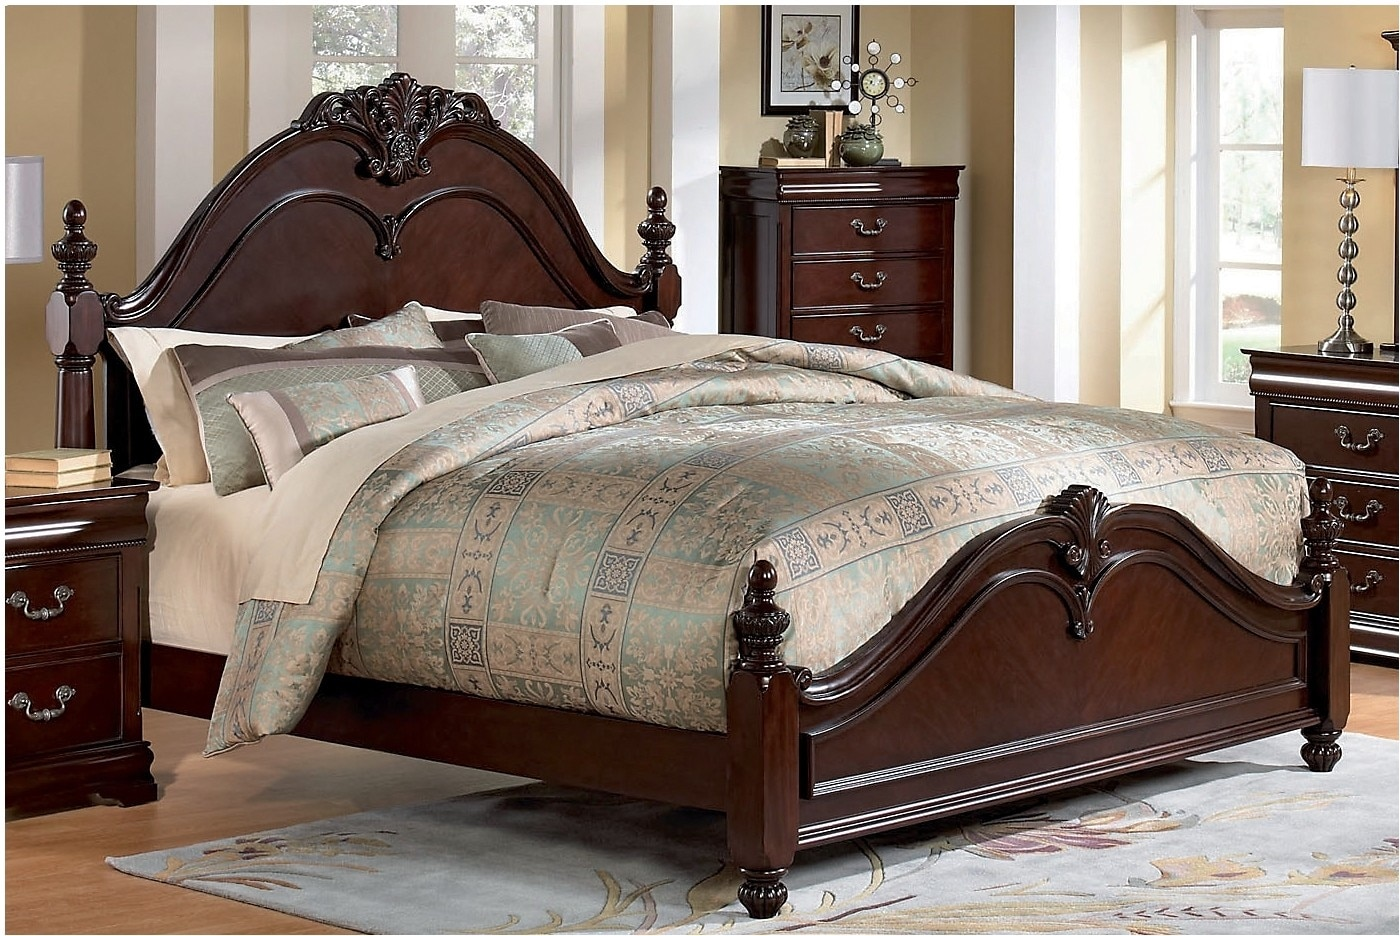 Bedroom Furniture - Westchester King Bed